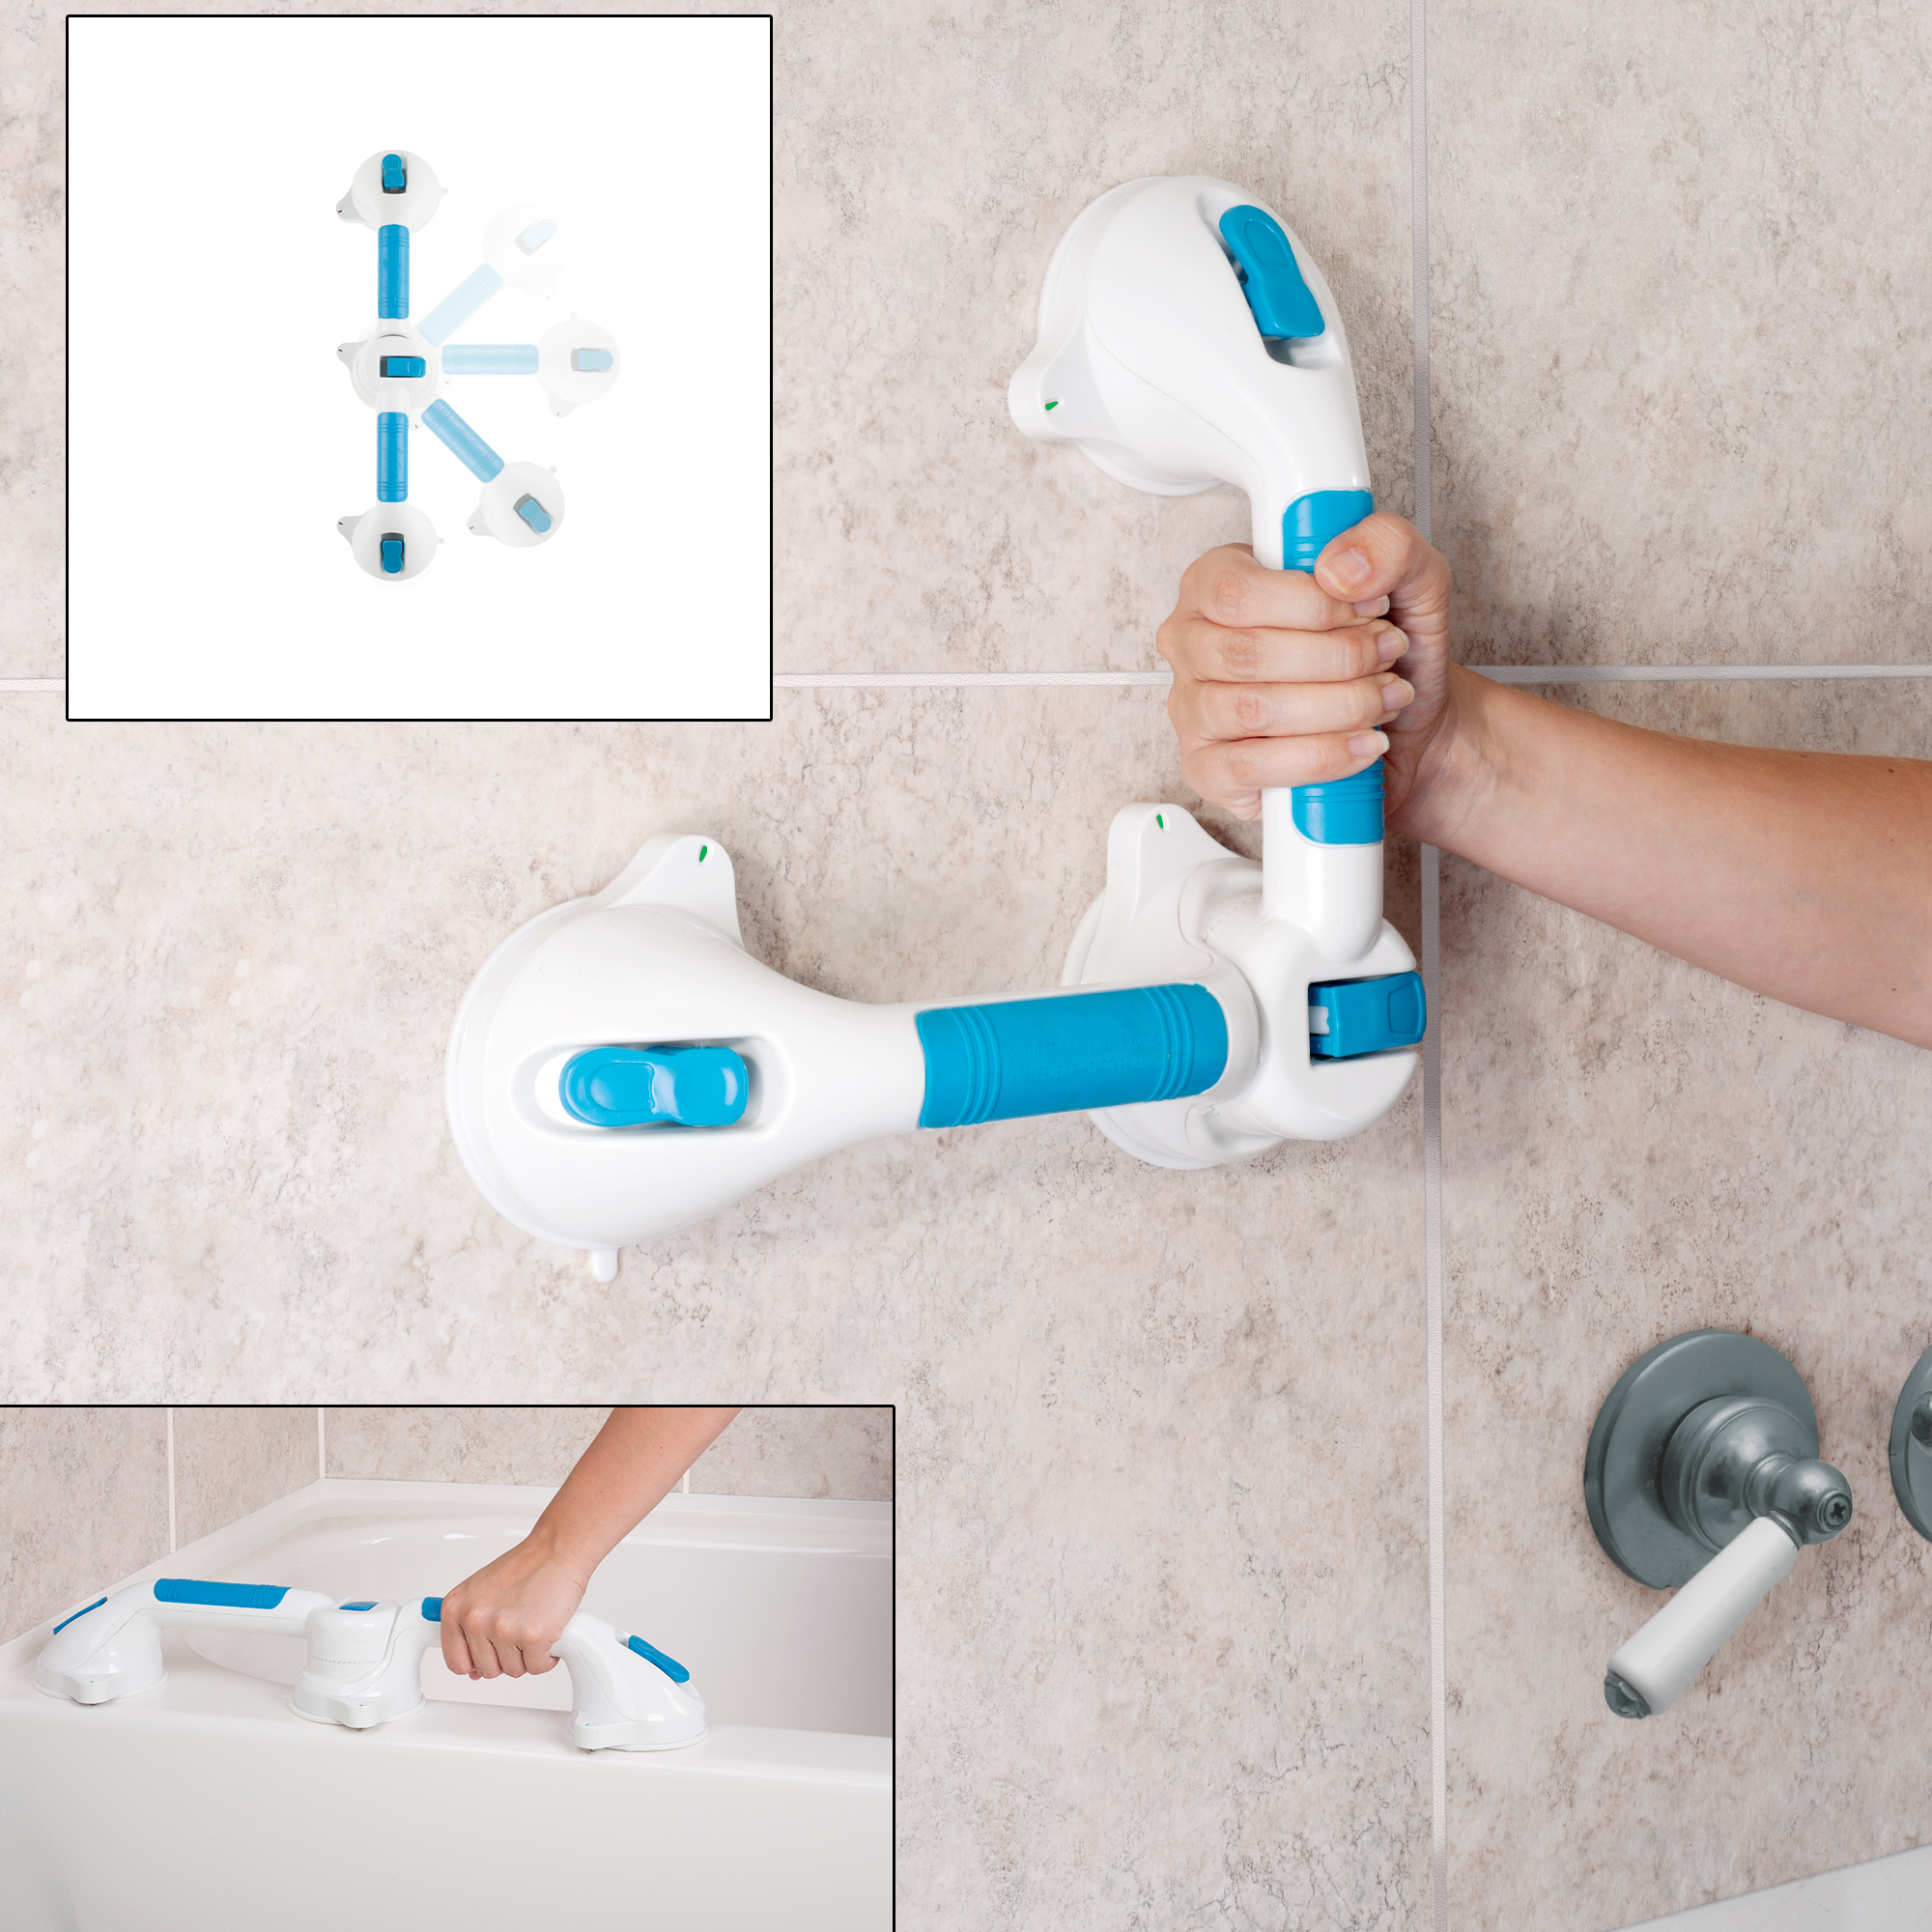 Bluestone Dual Grip Suction Grab Bar 5472895